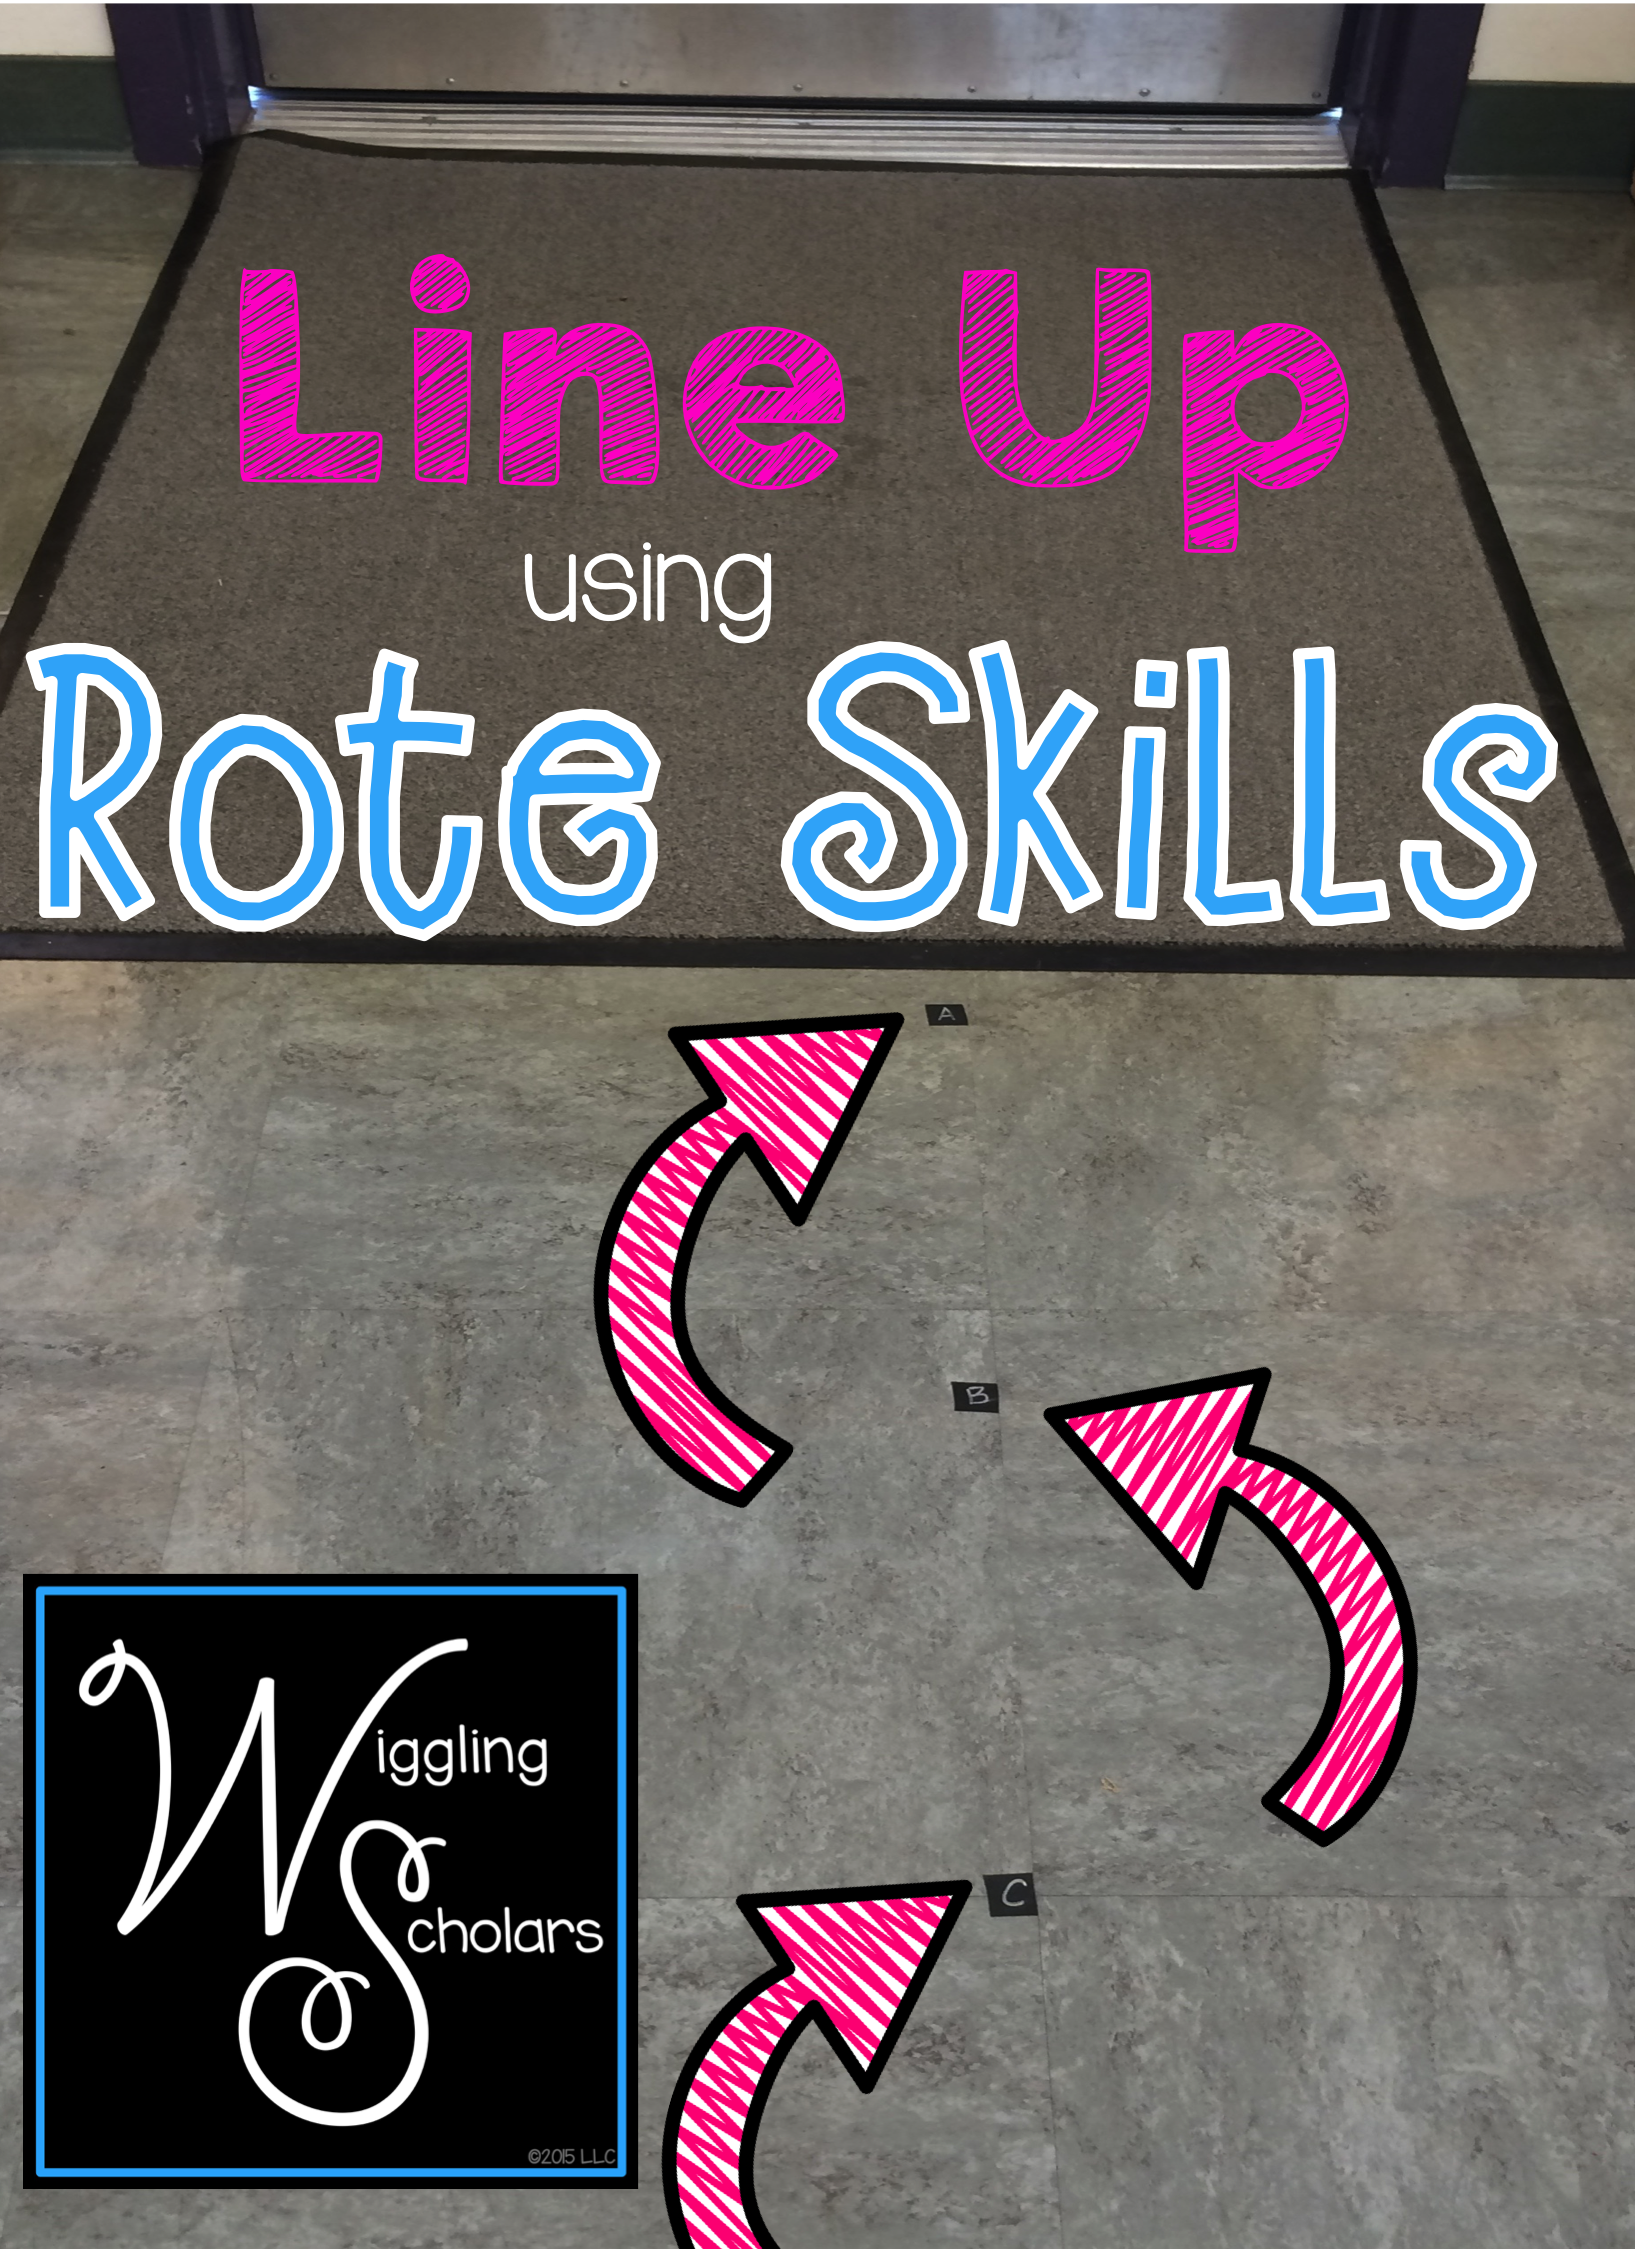 Line Up Using Rote Skills